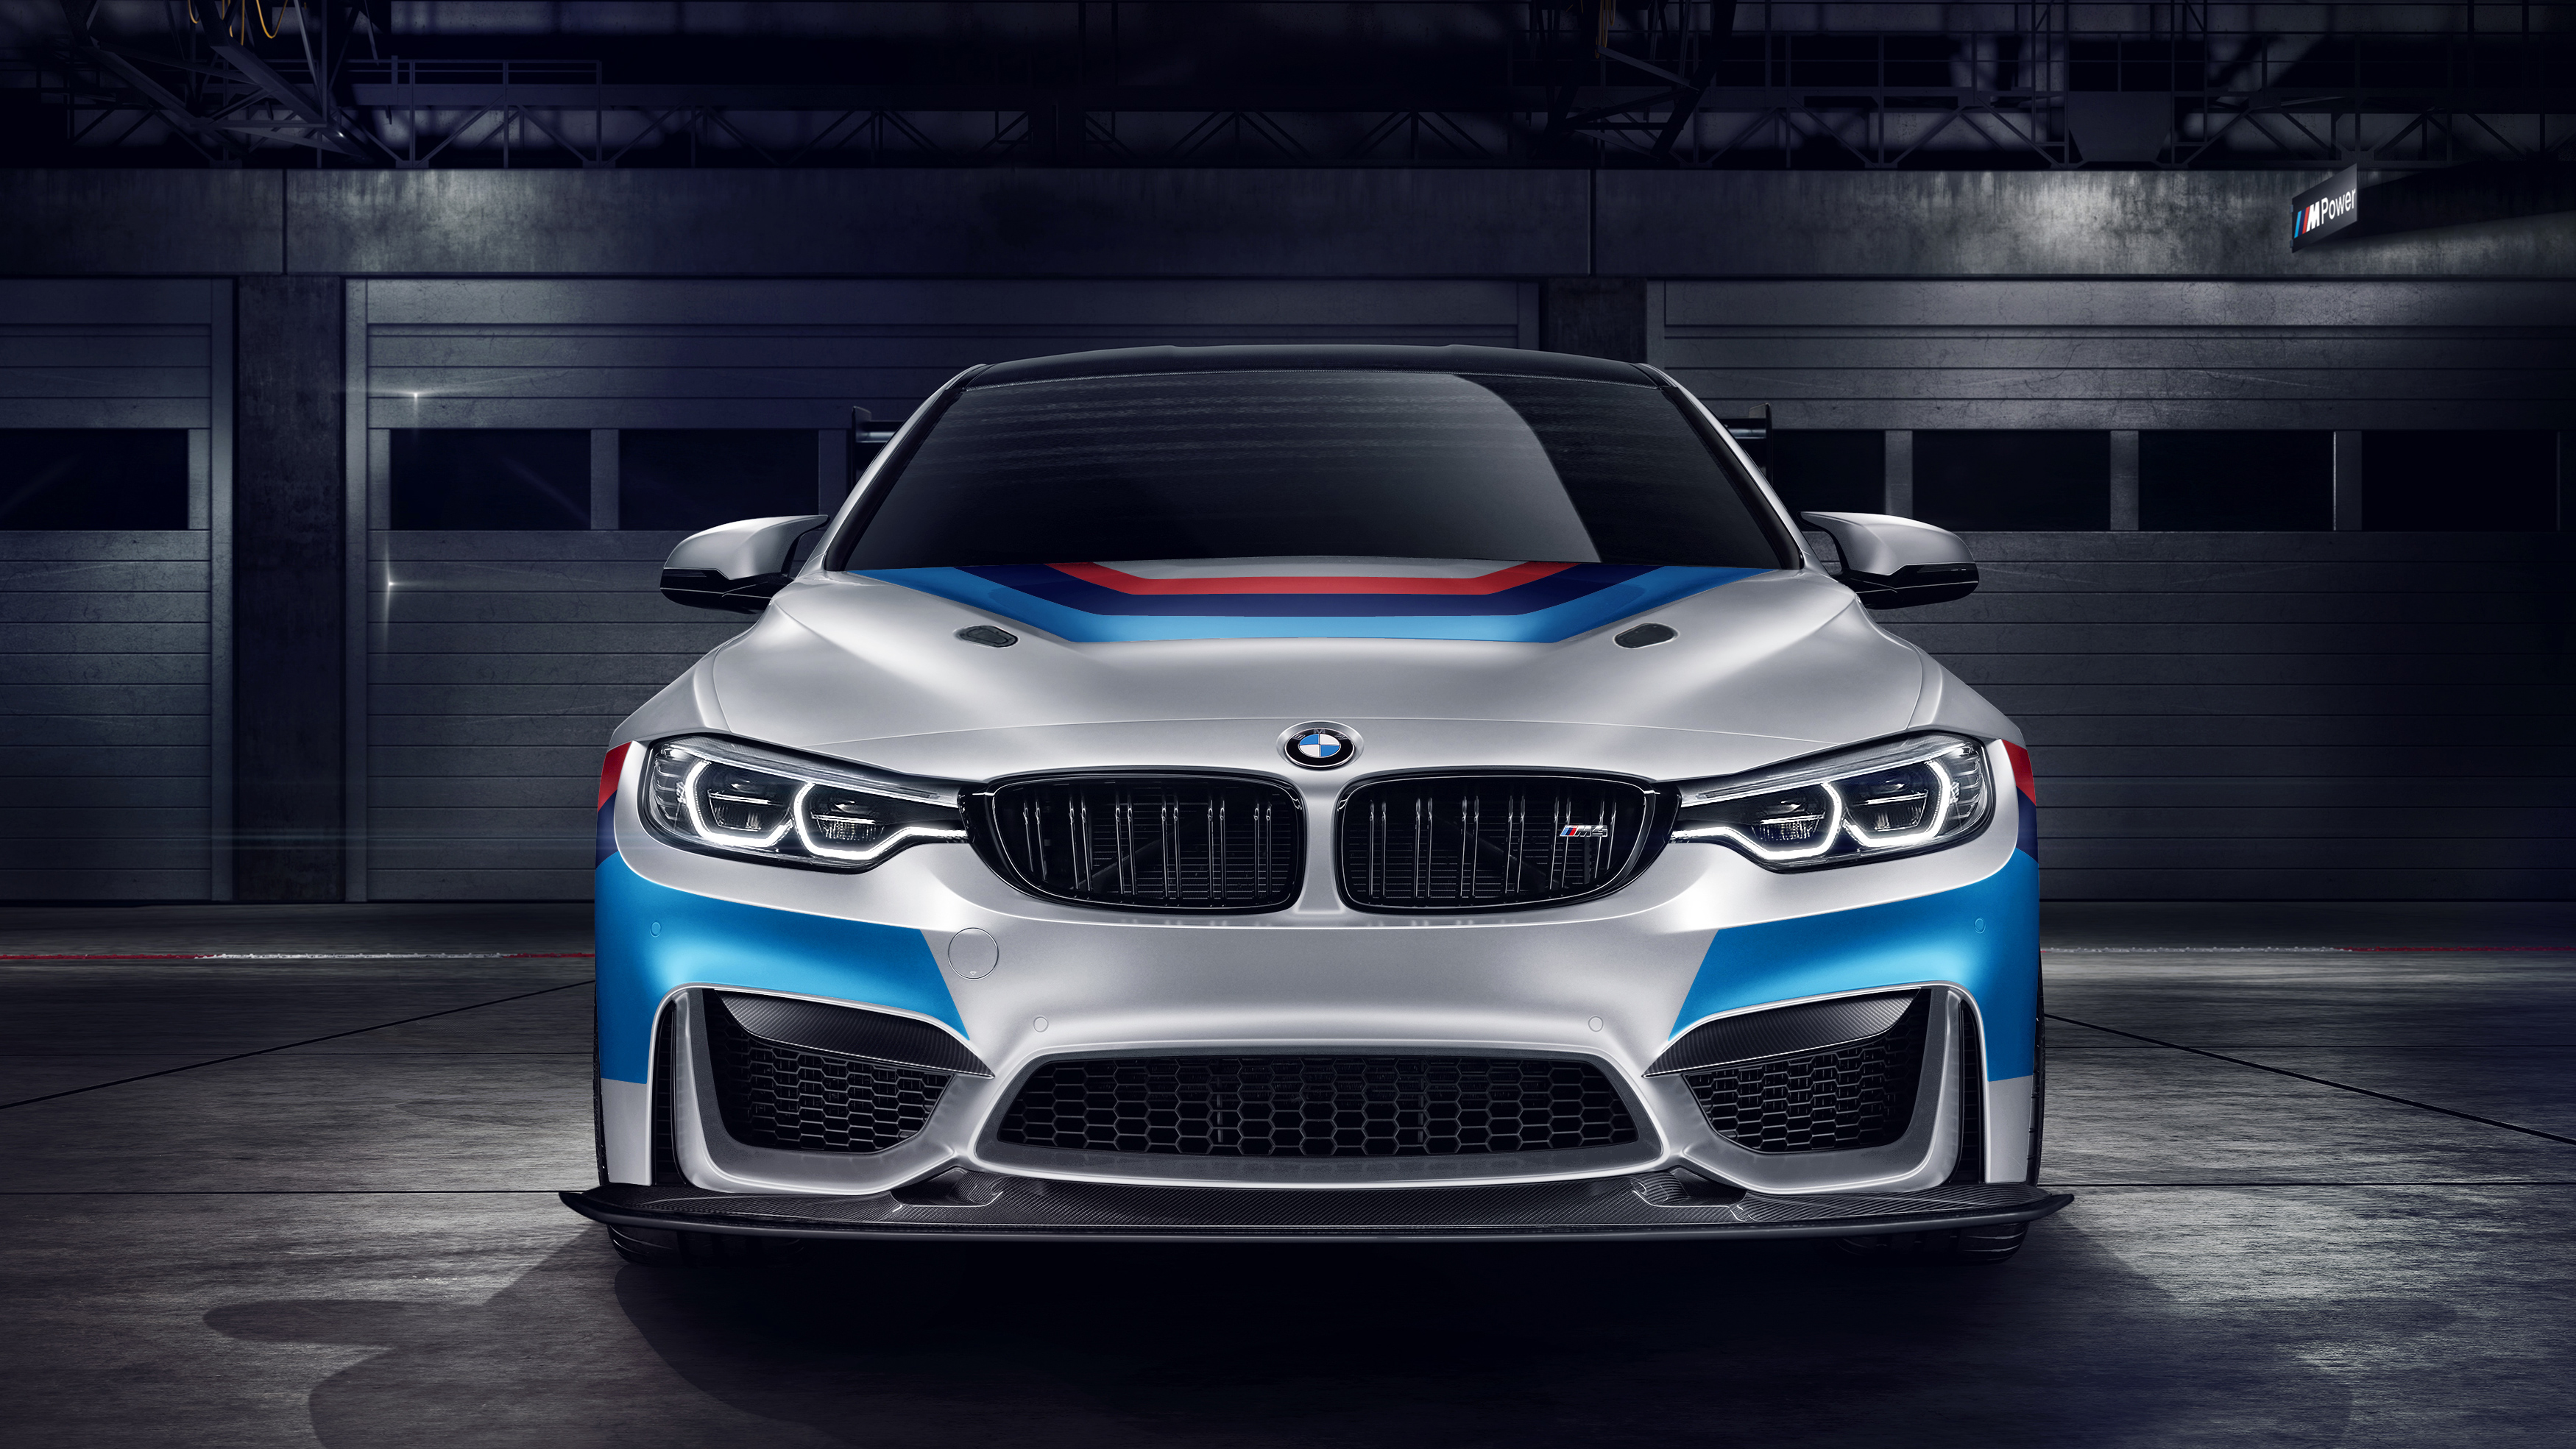 bmw m4 gt4 competition package 4k wallpaper hd car wallpapers id 8477. Black Bedroom Furniture Sets. Home Design Ideas